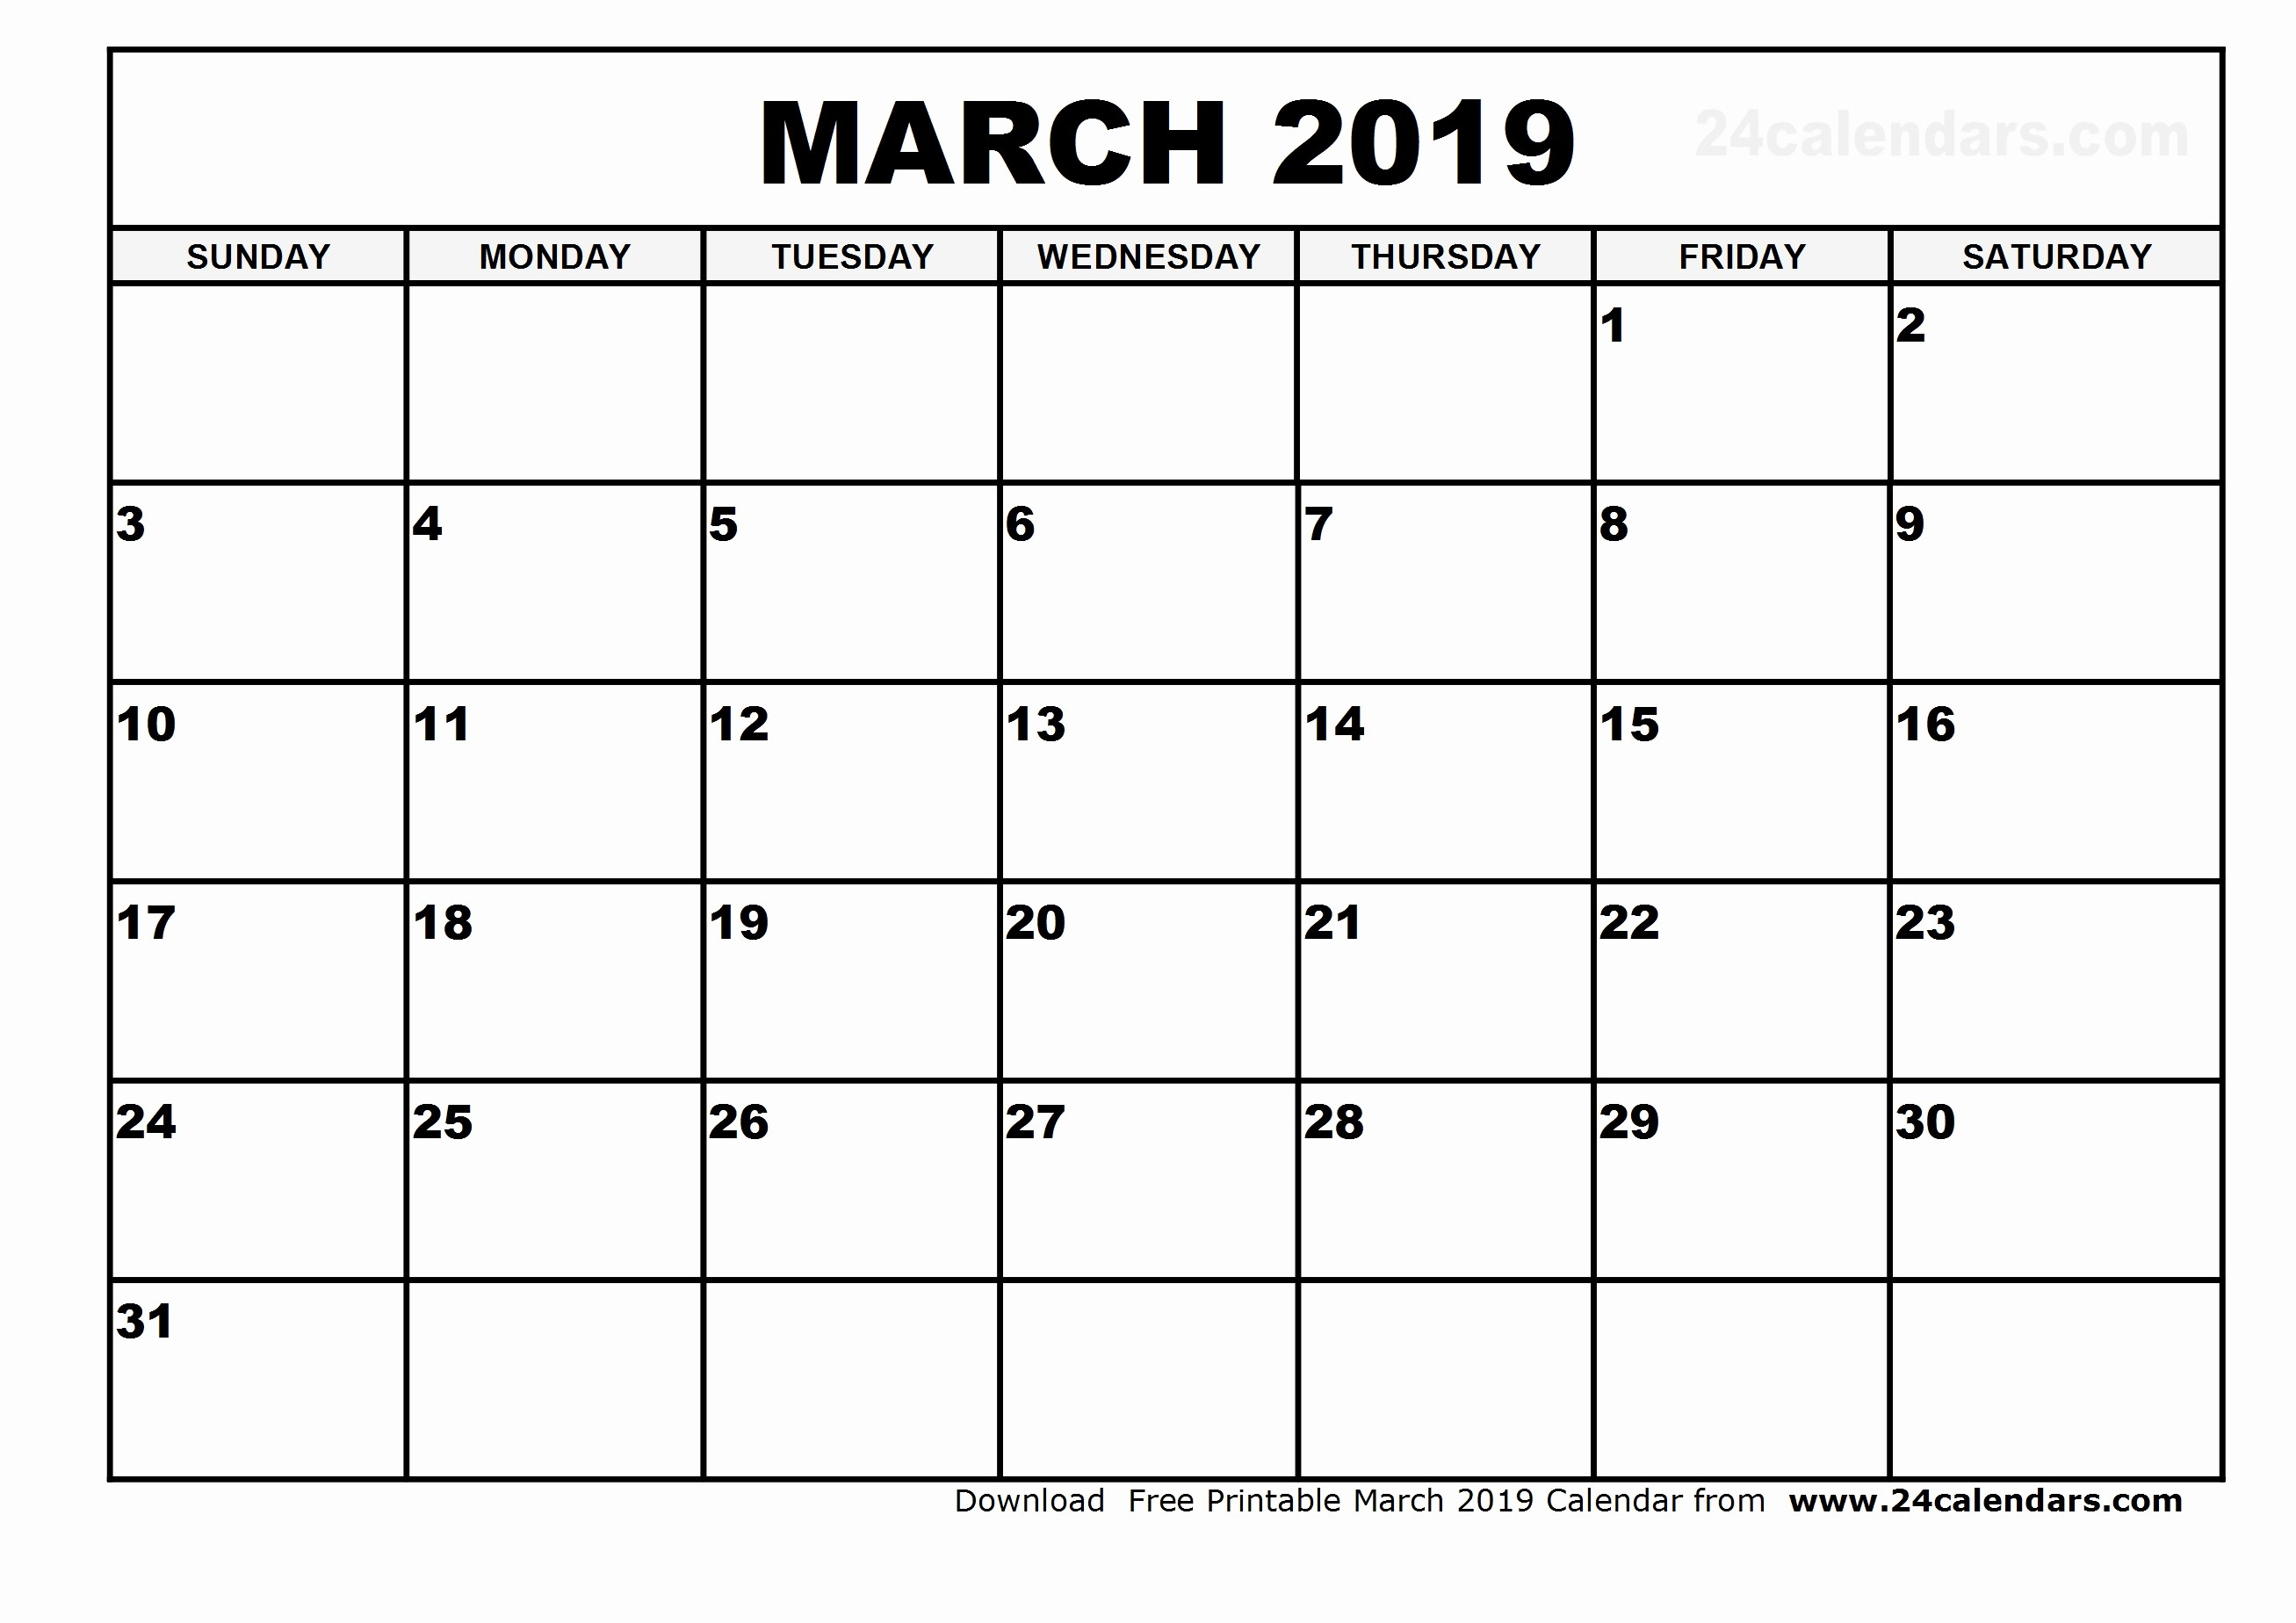 Free Printable Calendar Templates 2019 Elegant March 2019 Calendar Template